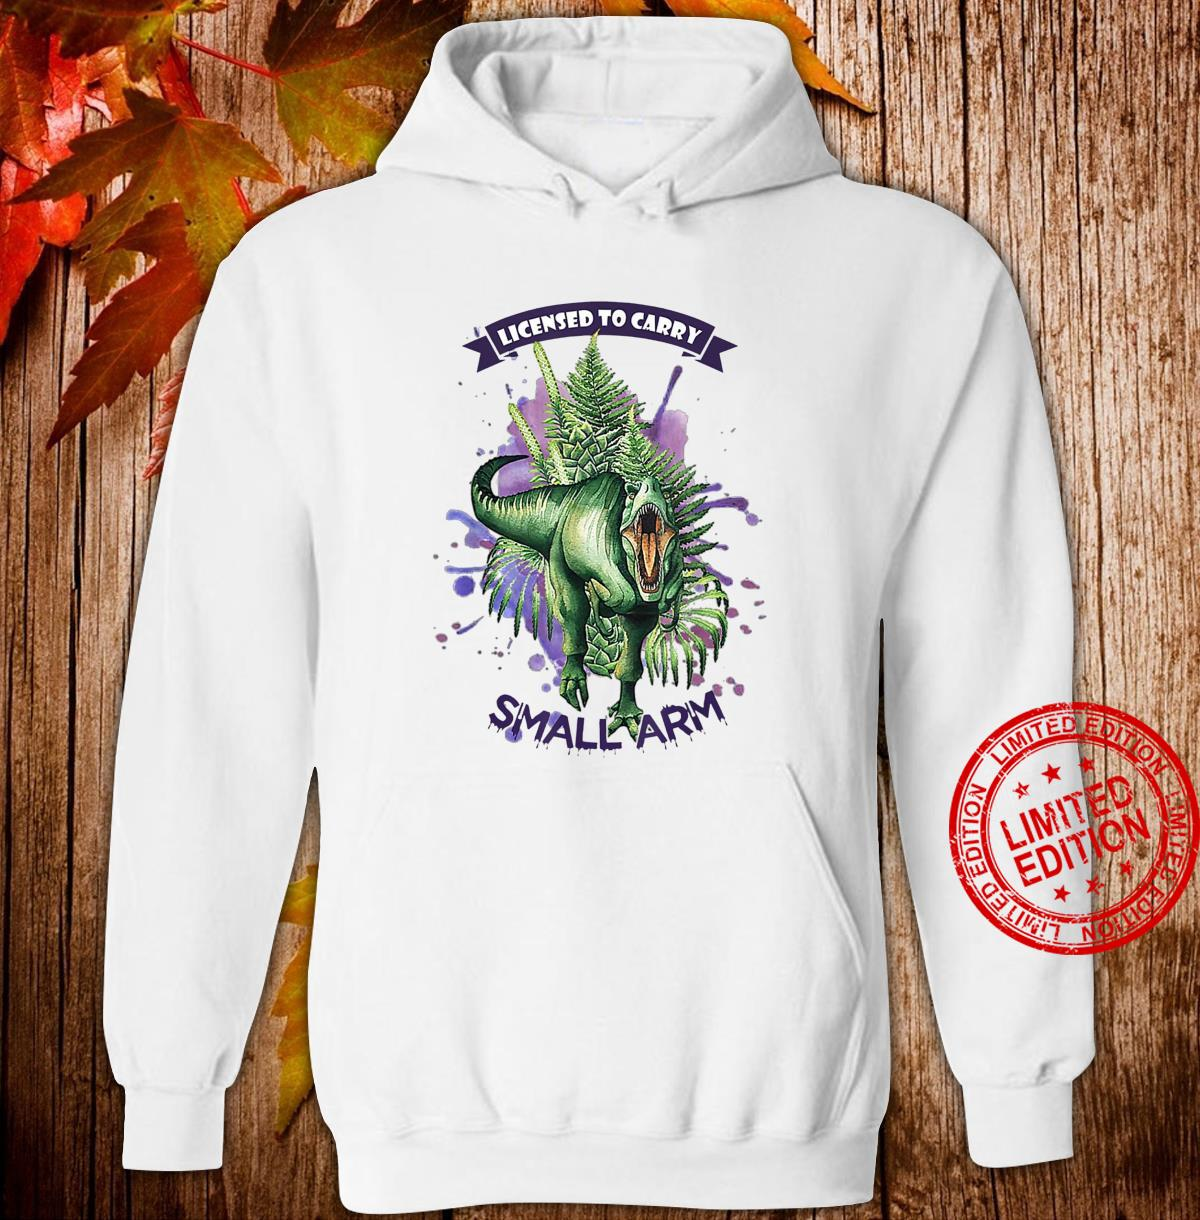 License to Carry Small Arms Dinosaurs Watercolor Tree Floral Shirt hoodie